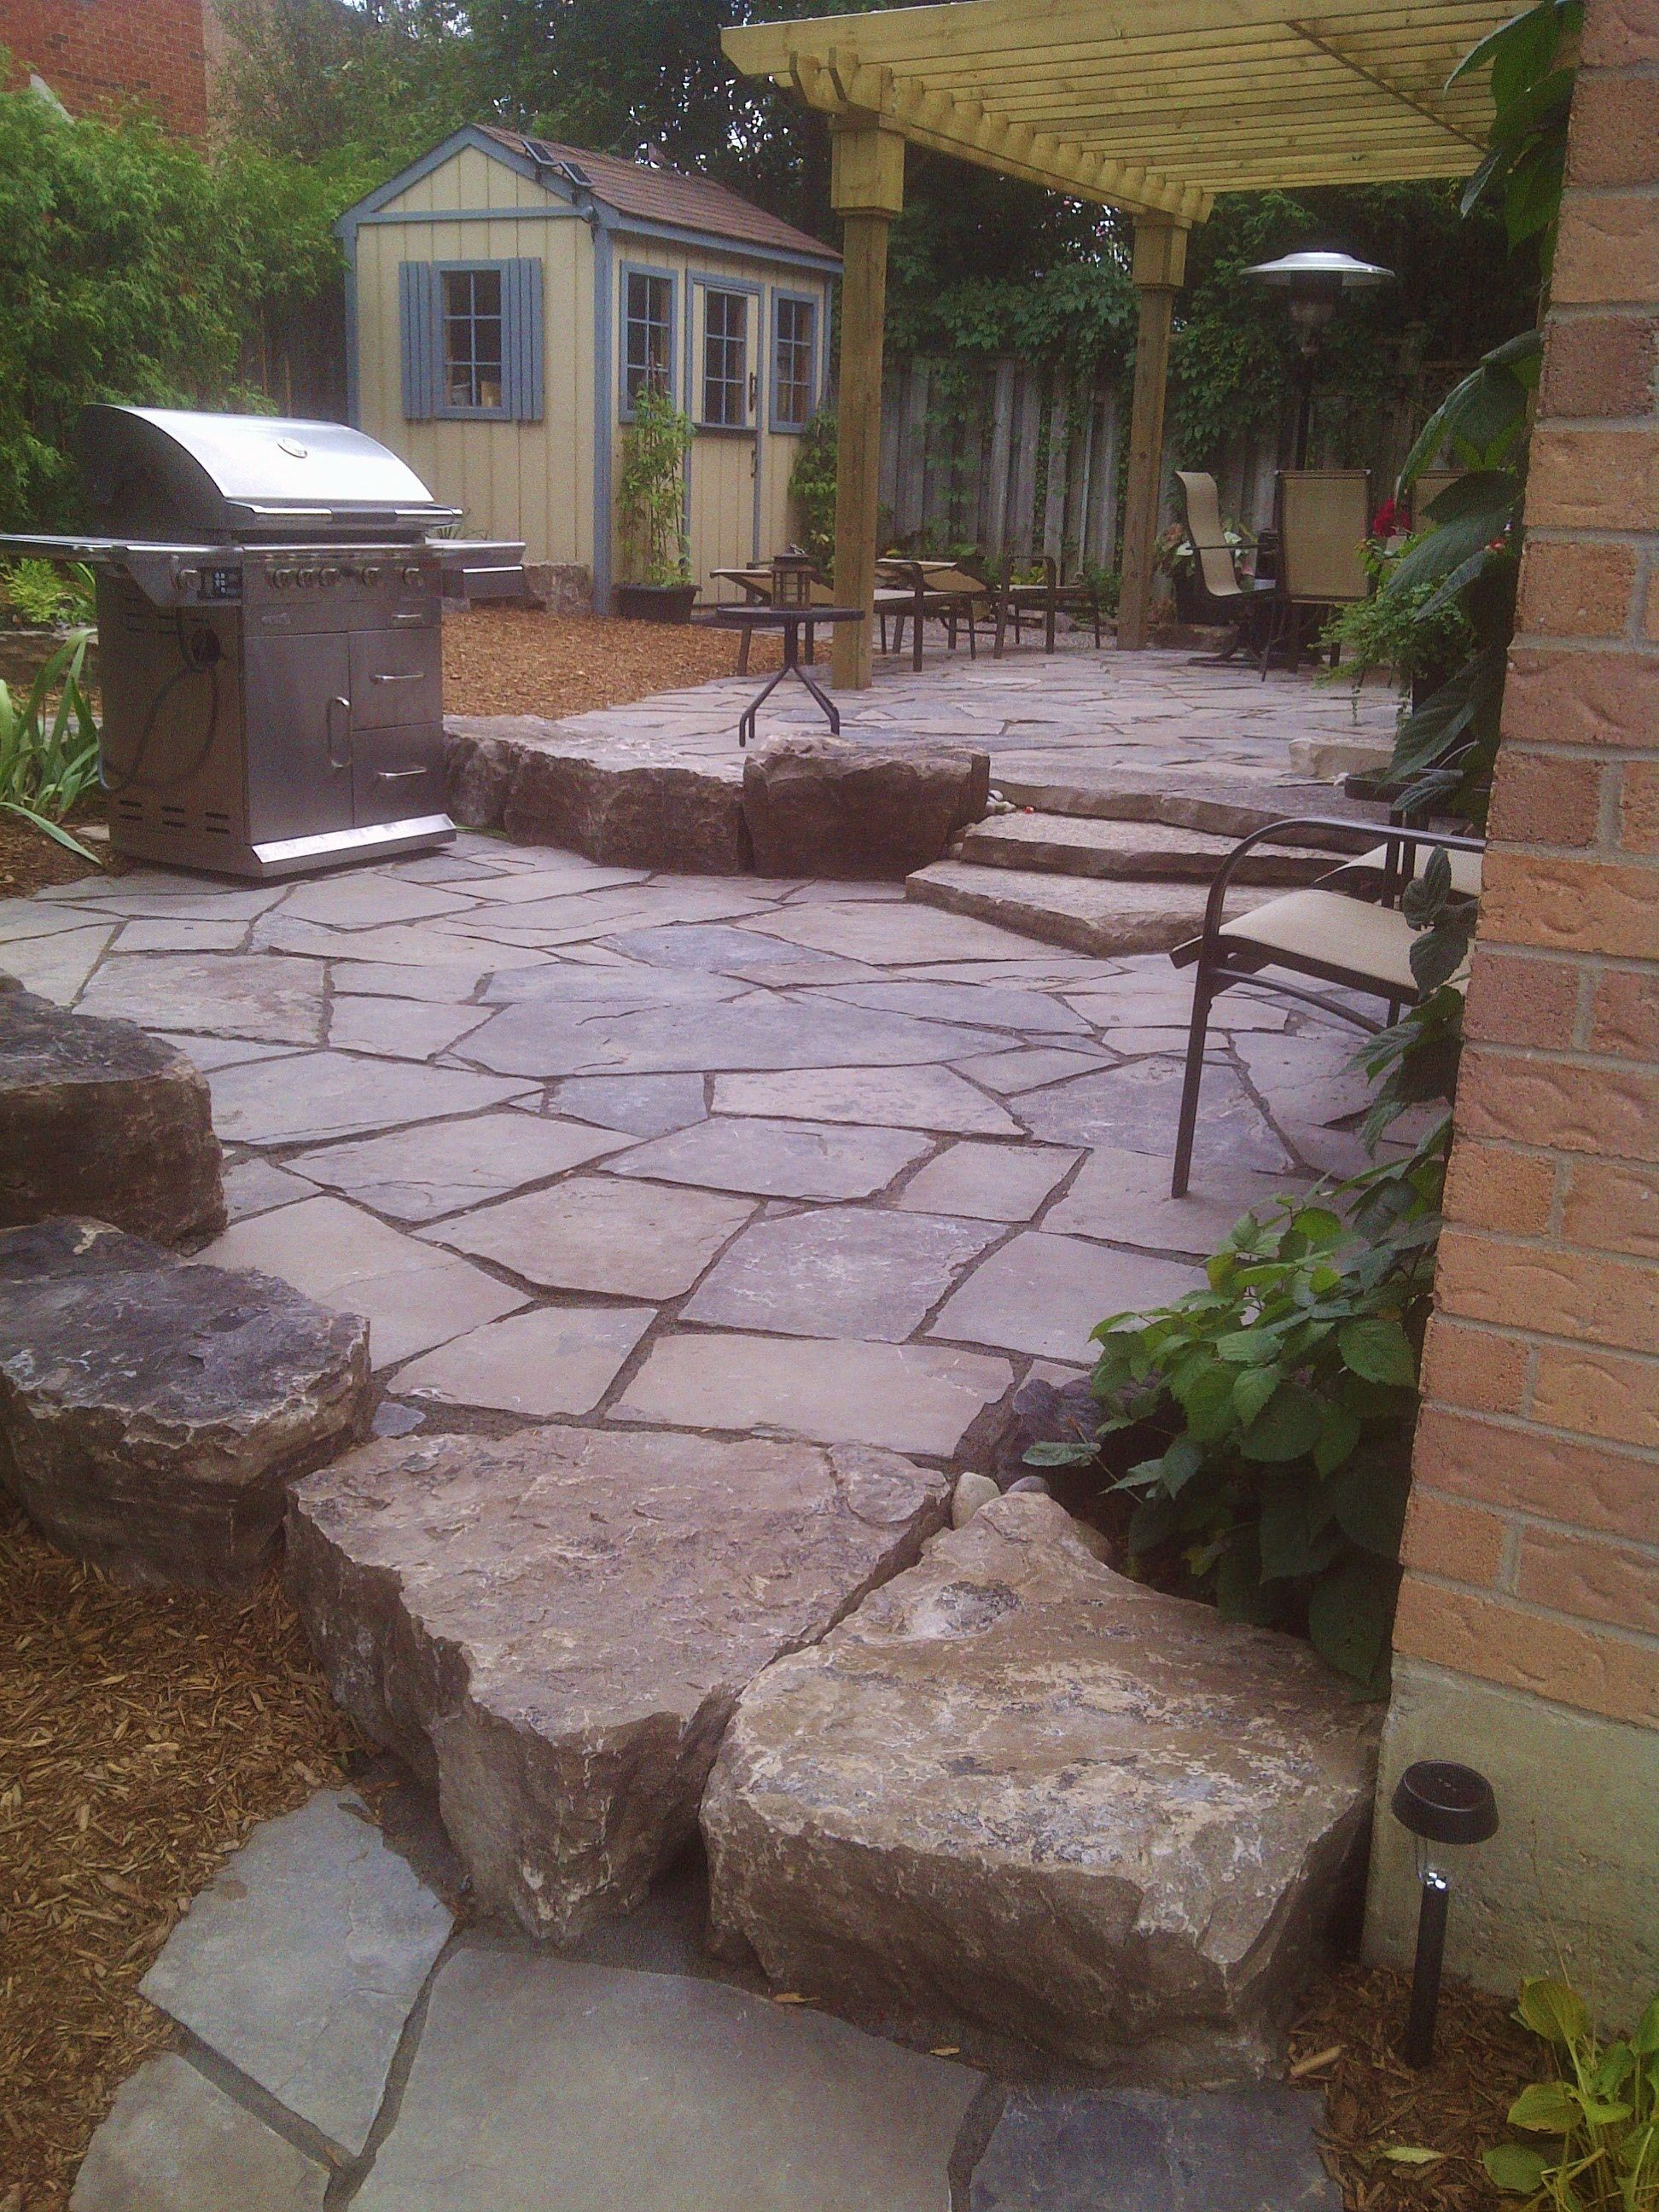 2 tiered random flagstone patio with armour stone walls and steps